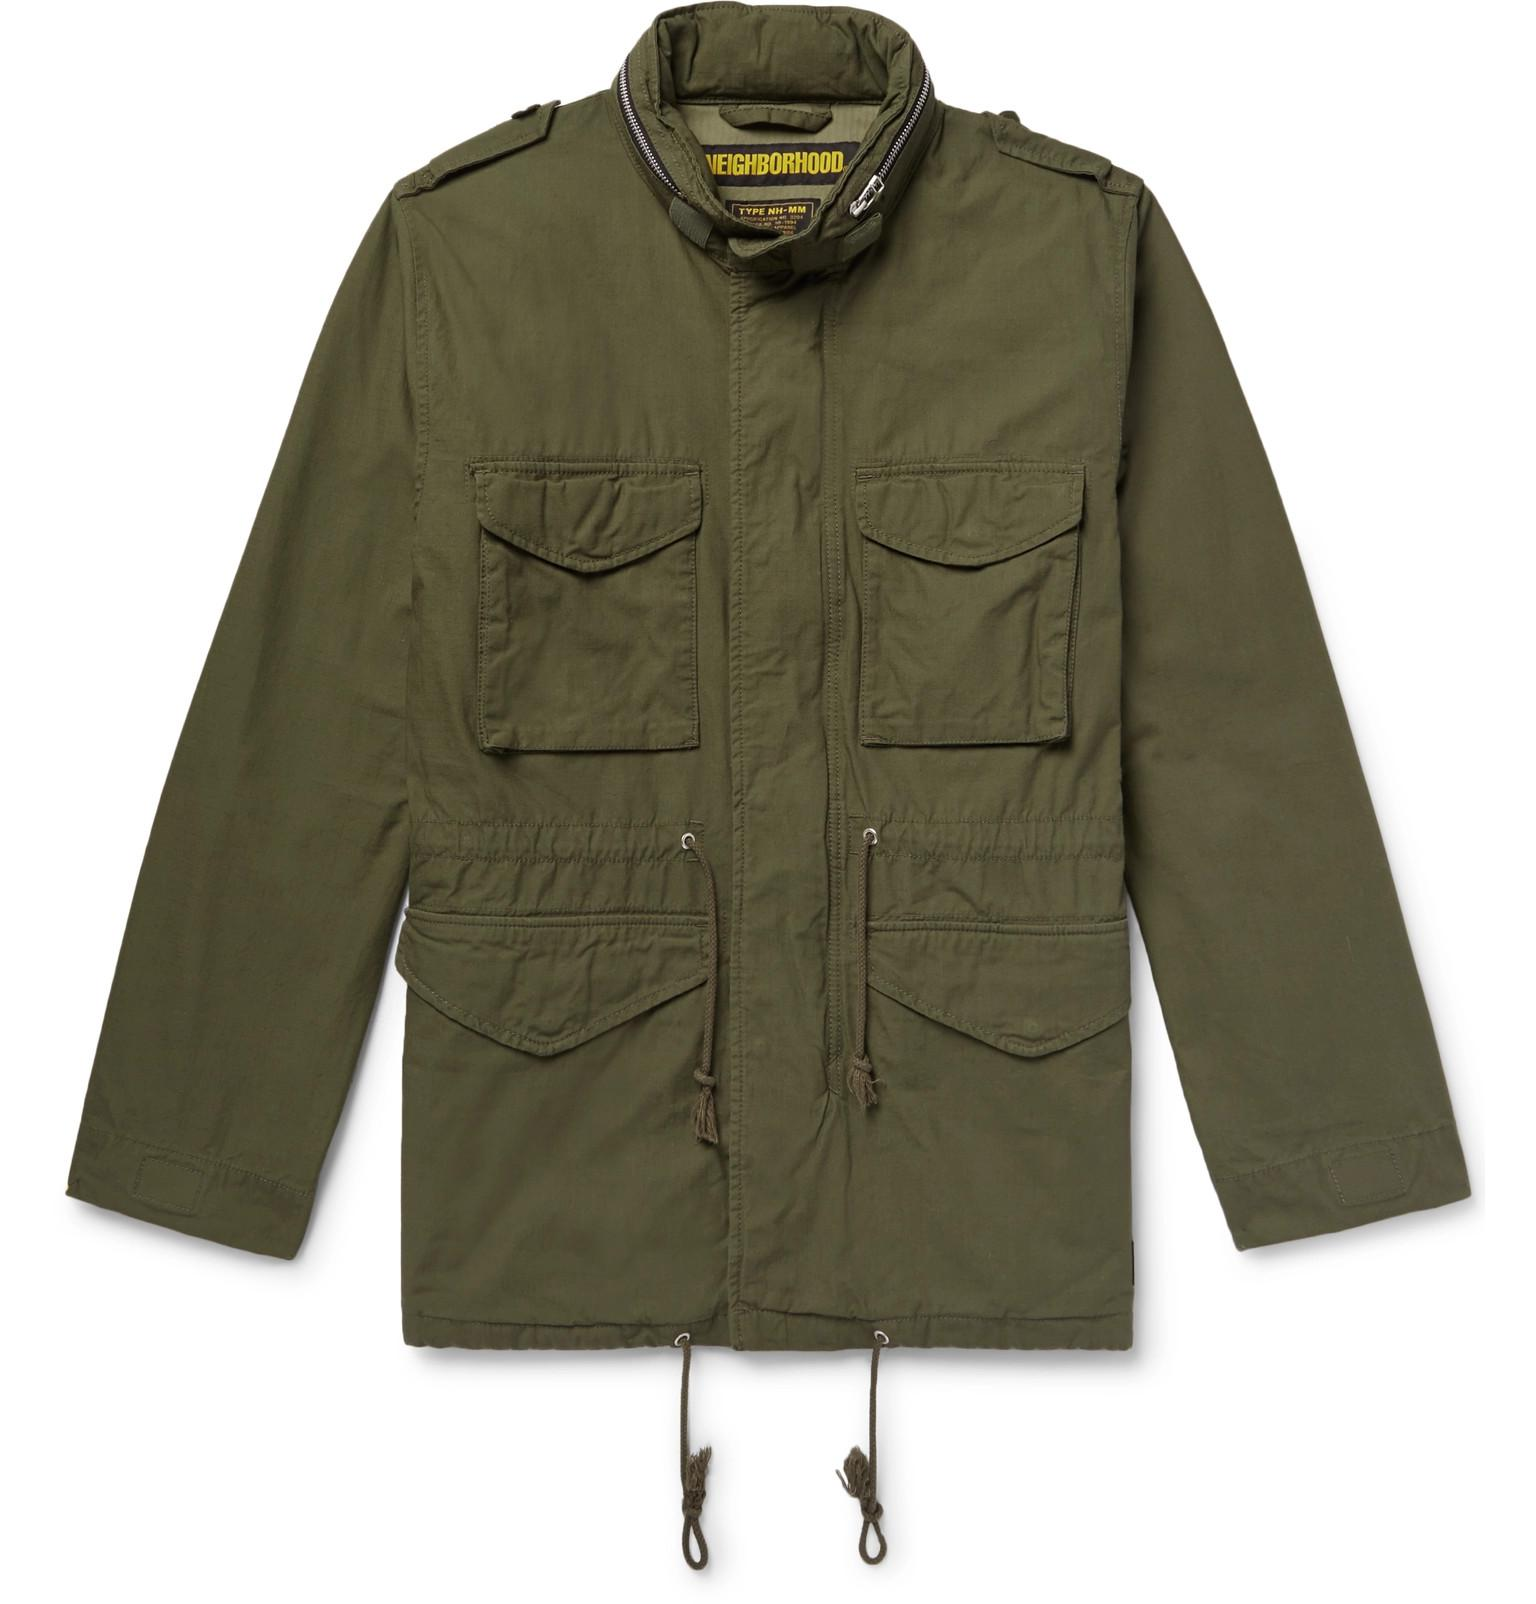 Hooded Neighborhood Men Lyst Jacket Cotton canvas in 65 for M Green w6qI6xZBp